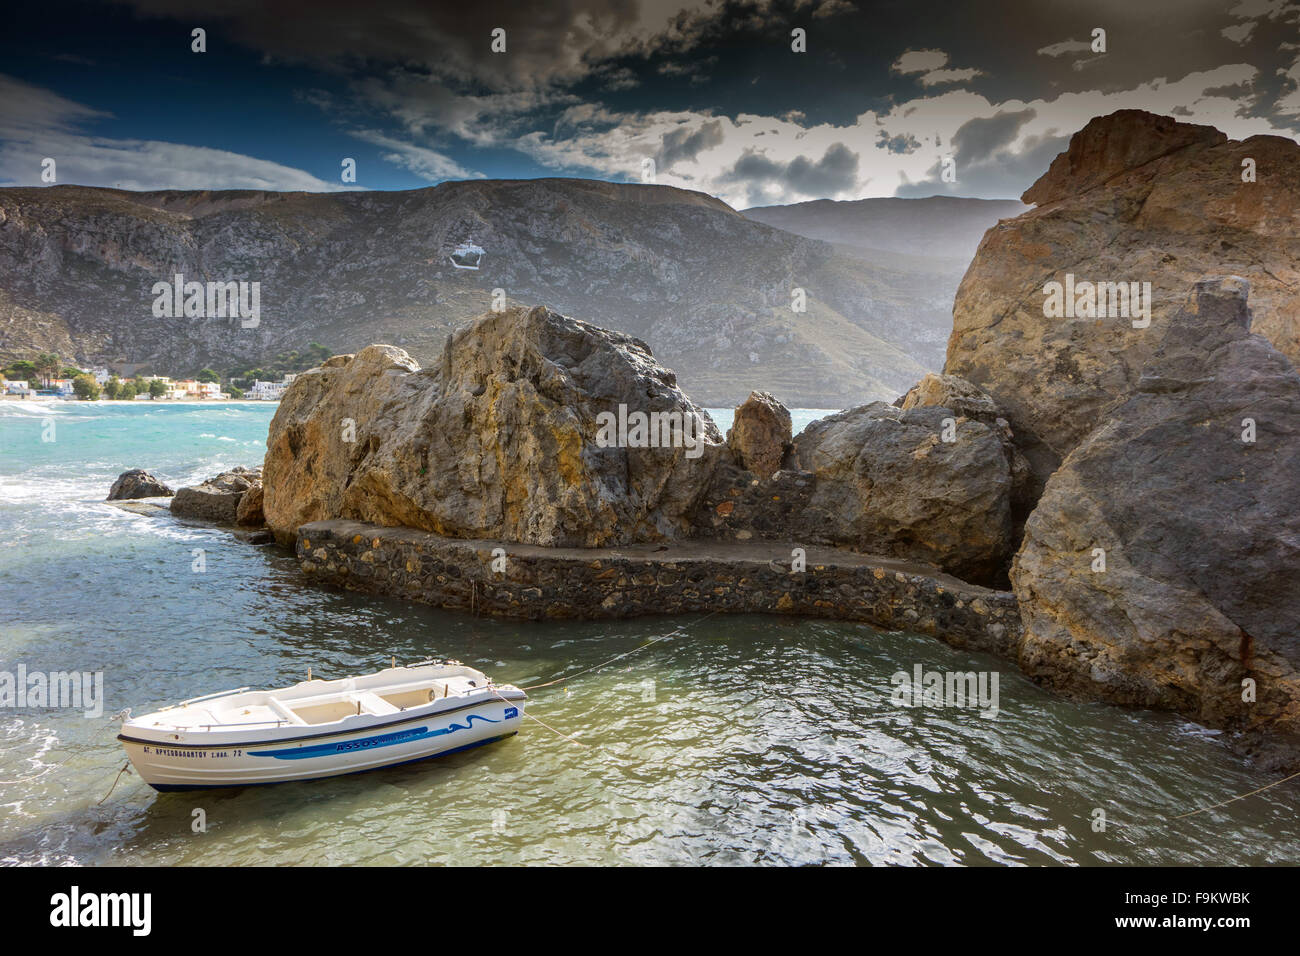 Small white rowing boat in small harbour harbor, Kalymnos, Greece - Stock Image